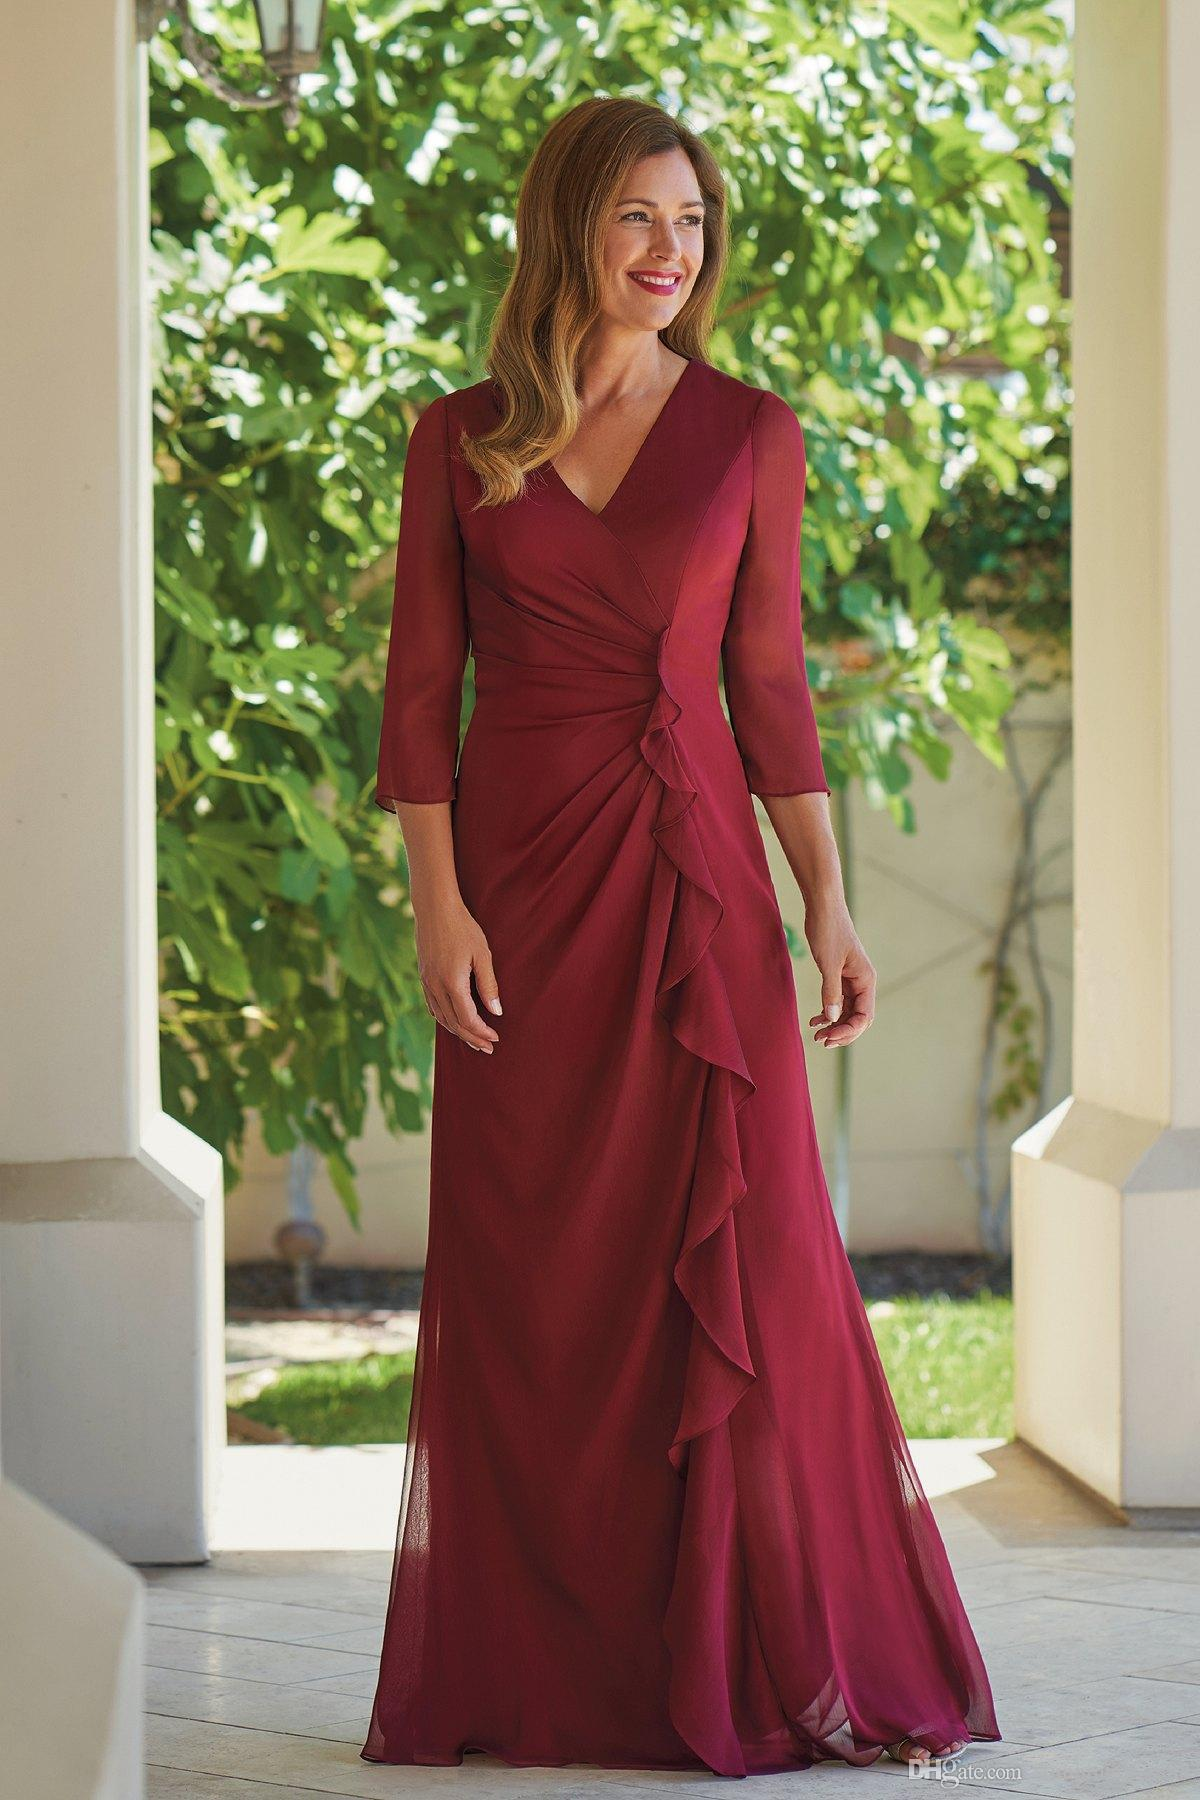 2019 Burgundy V neck Chiffon Mother of the Bride Groom Dresses 3/4 Long Sleeves Pleated Full Length Cheap Wedding Guest Party Dreess